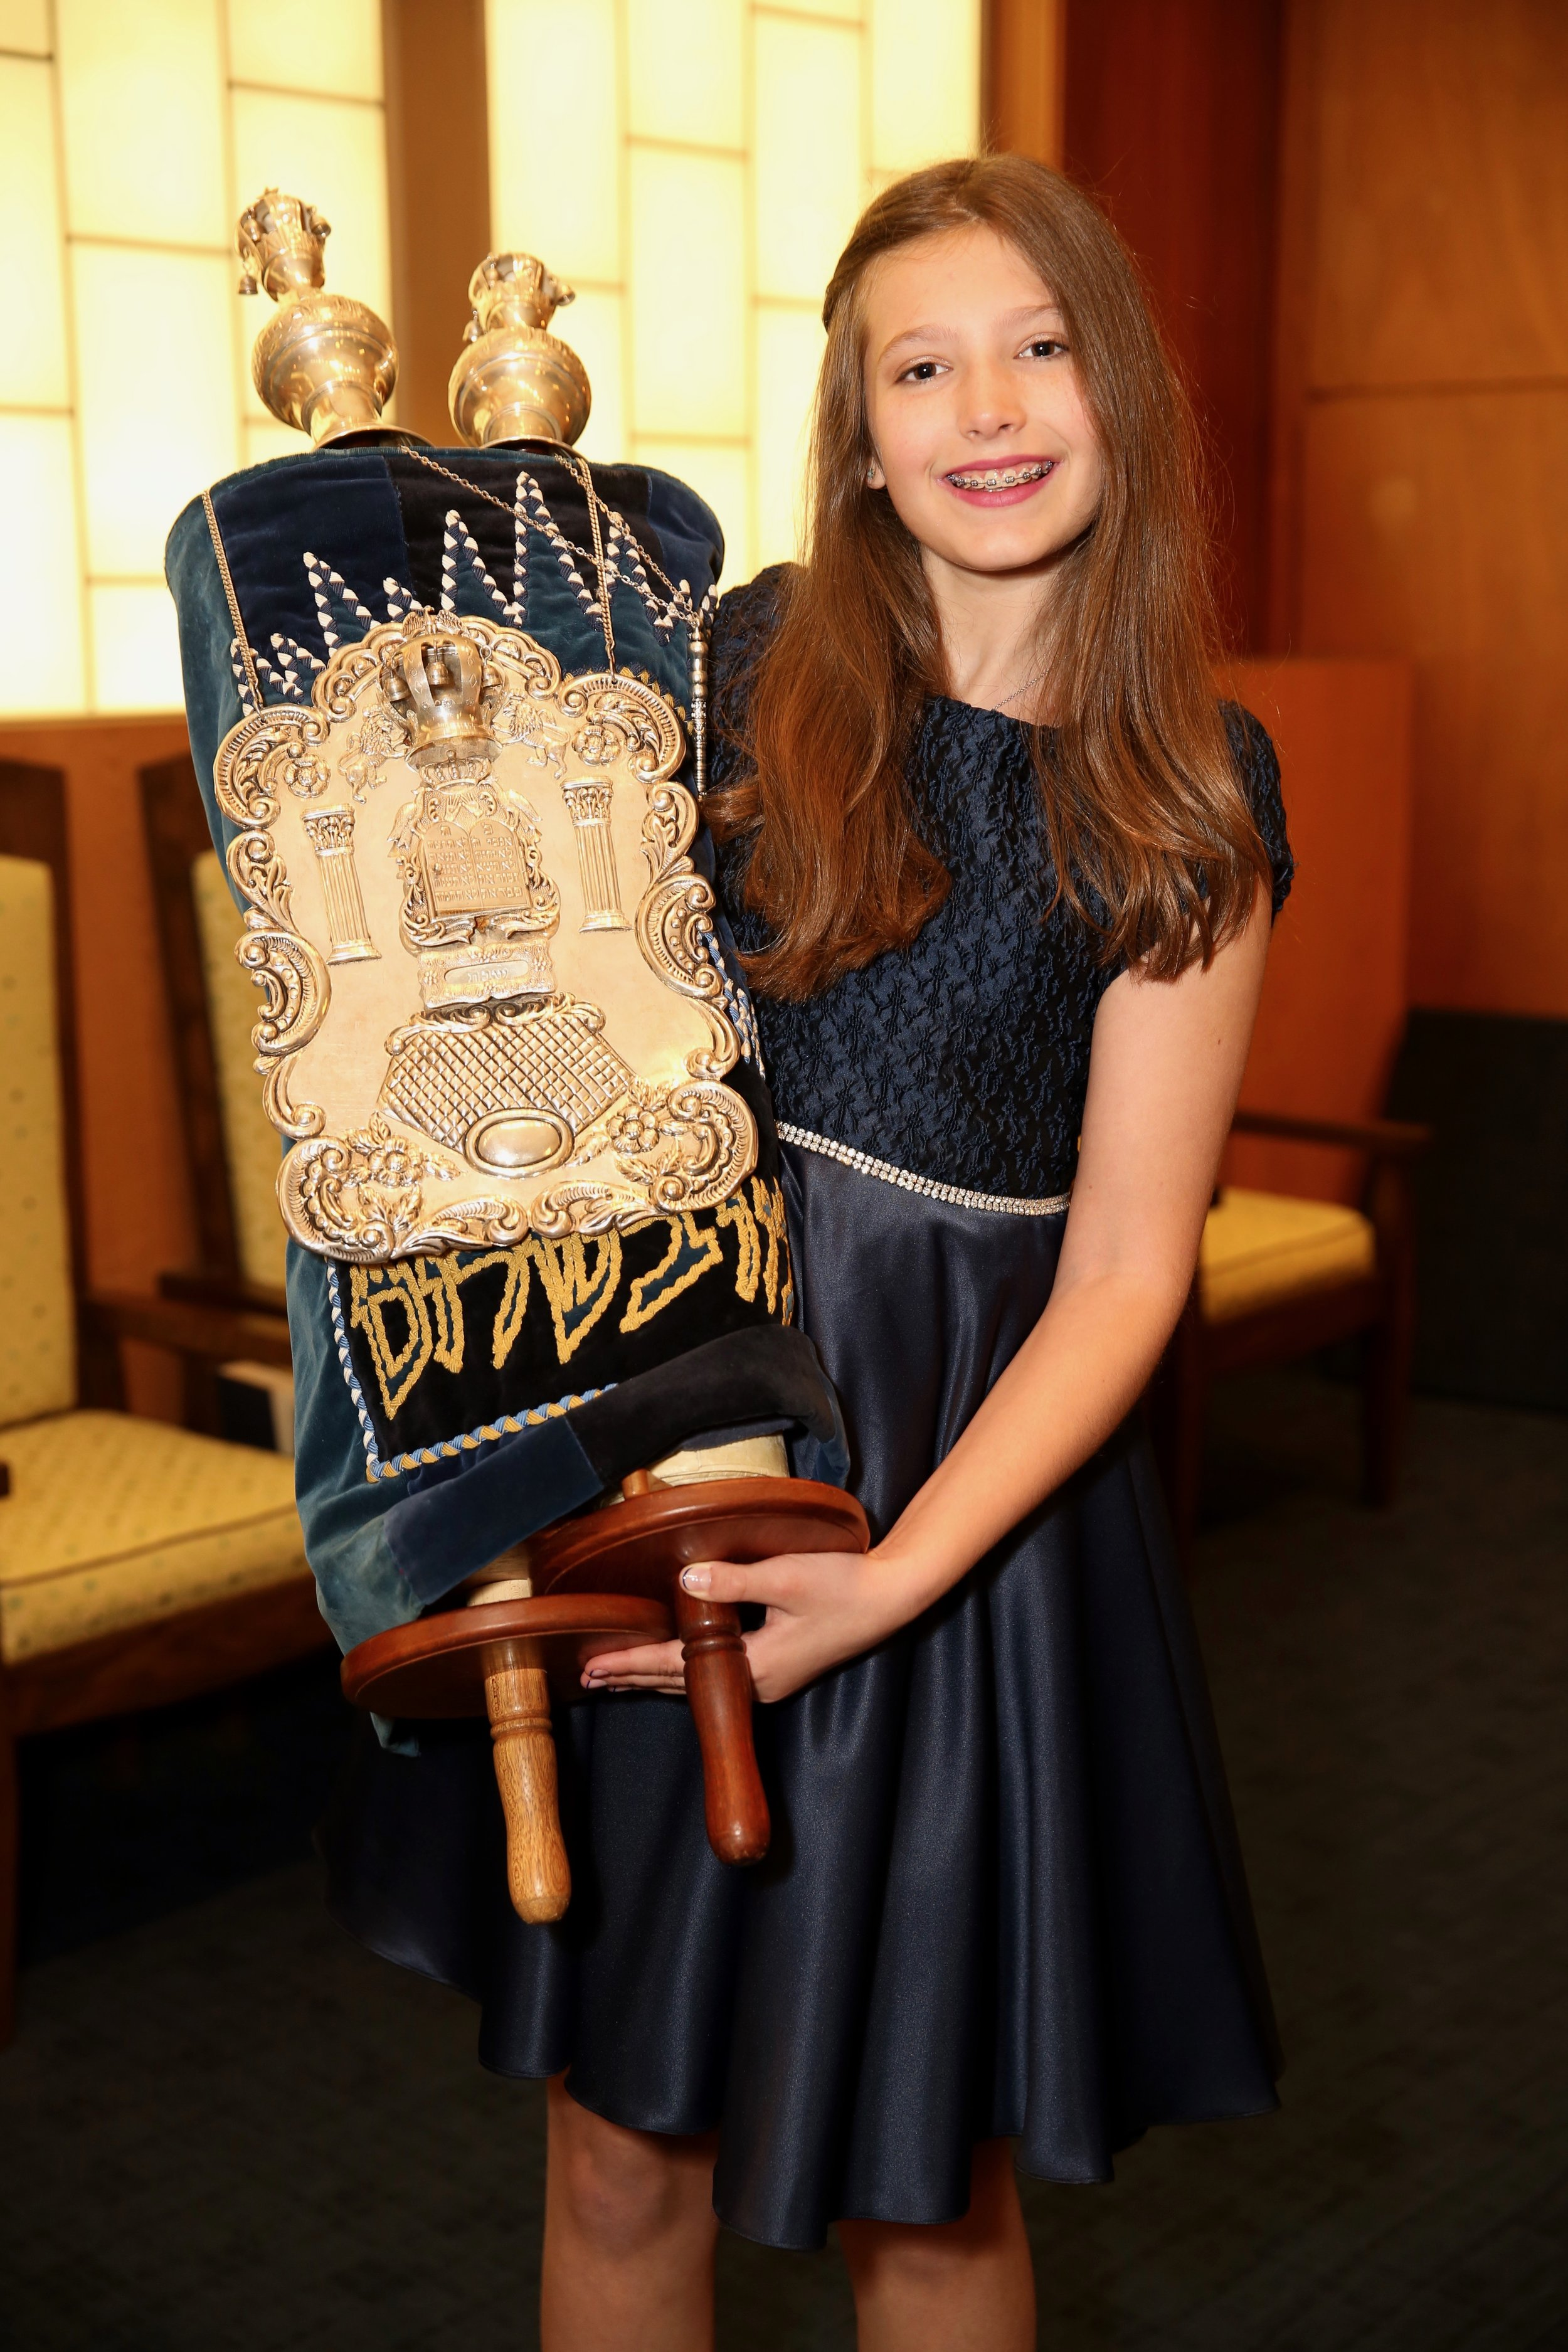 Bat Mitzvah Service at Temple Israel of Northern Westchester, New York